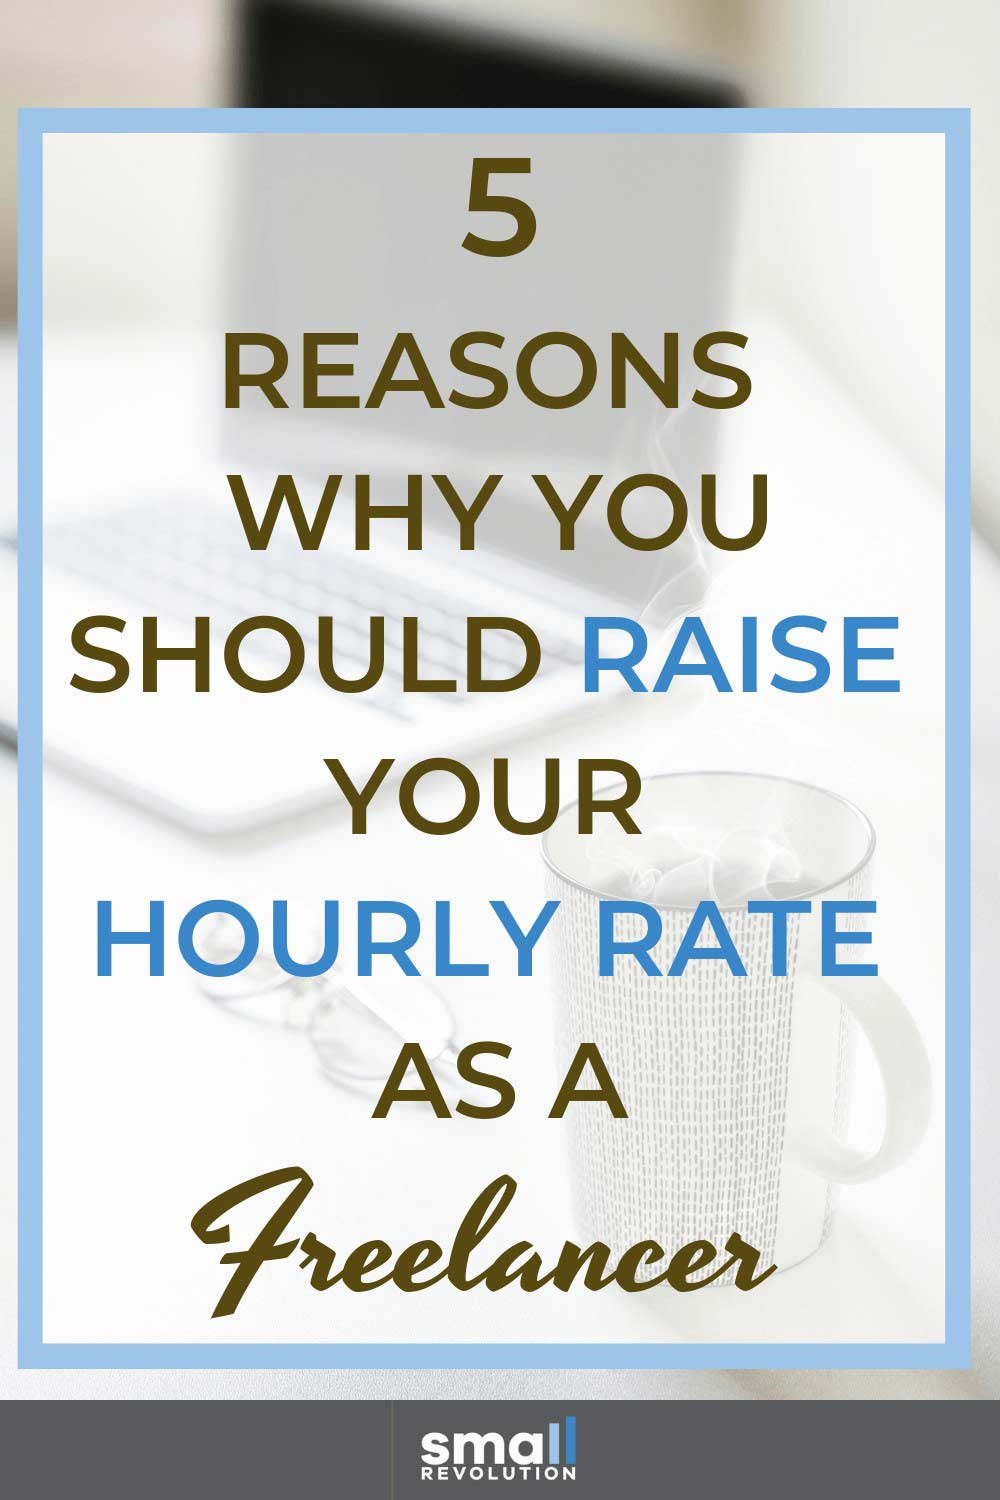 5 reasons why you should raise your hourly rate as a freelancer